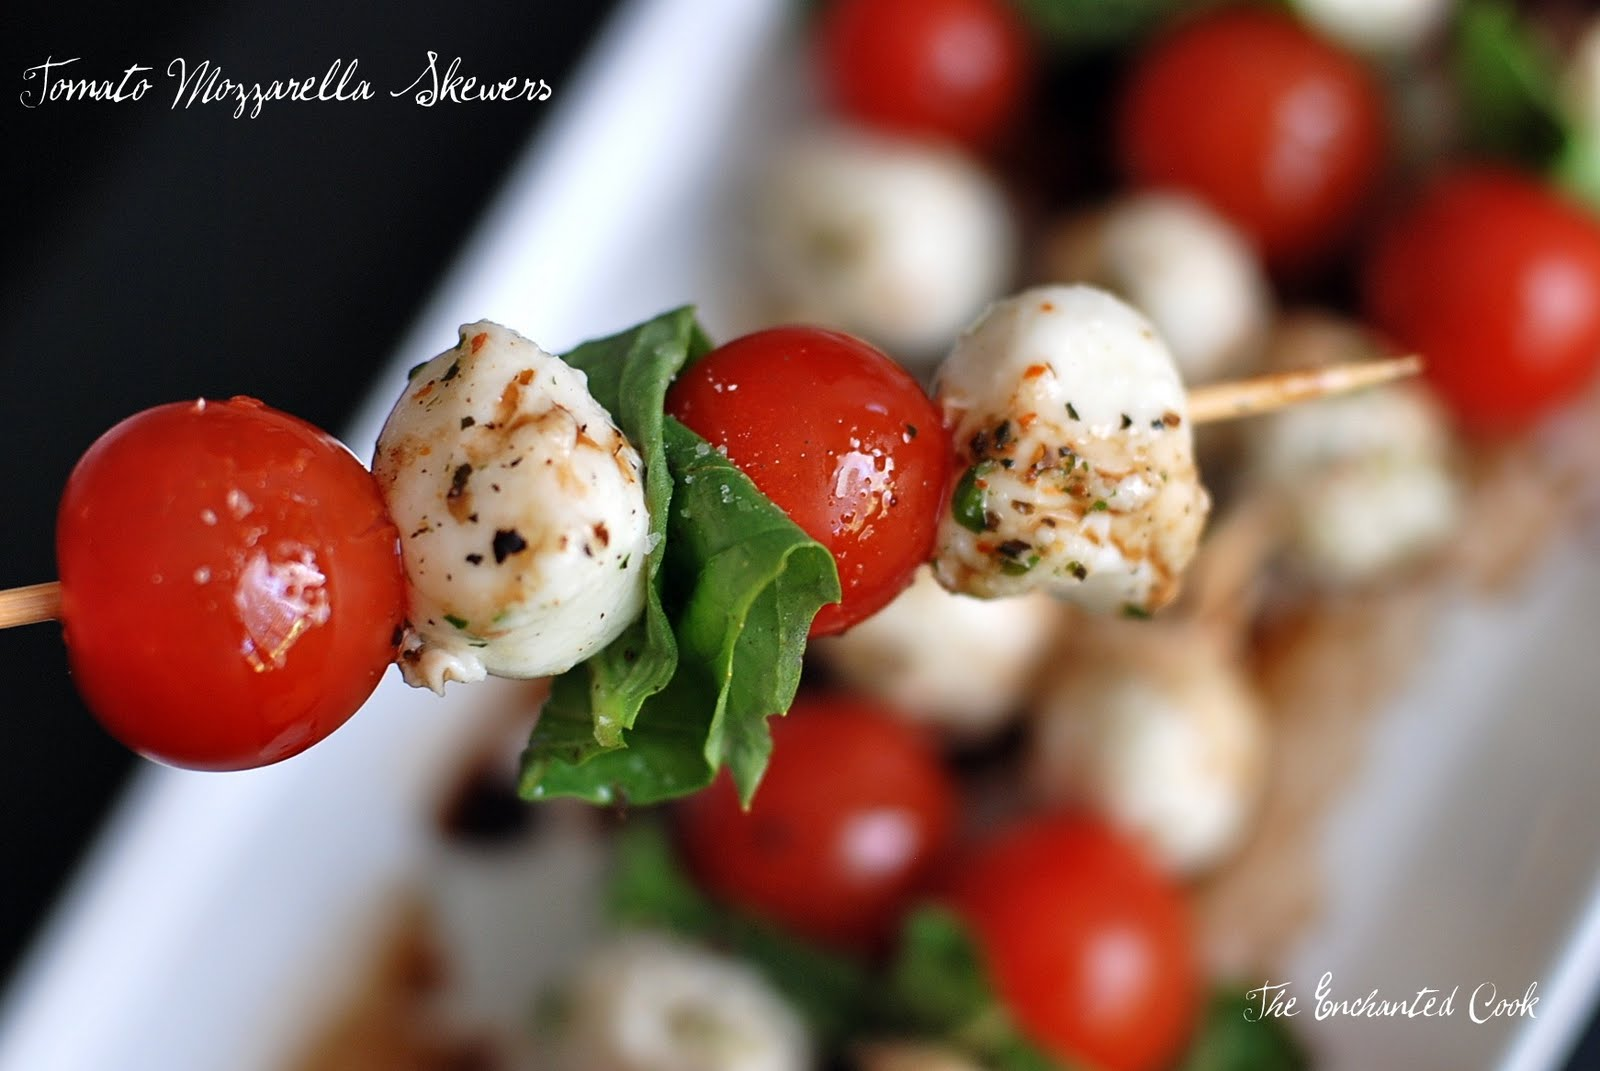 The Enchanted Cook: Tomato Mozzarella Skewers